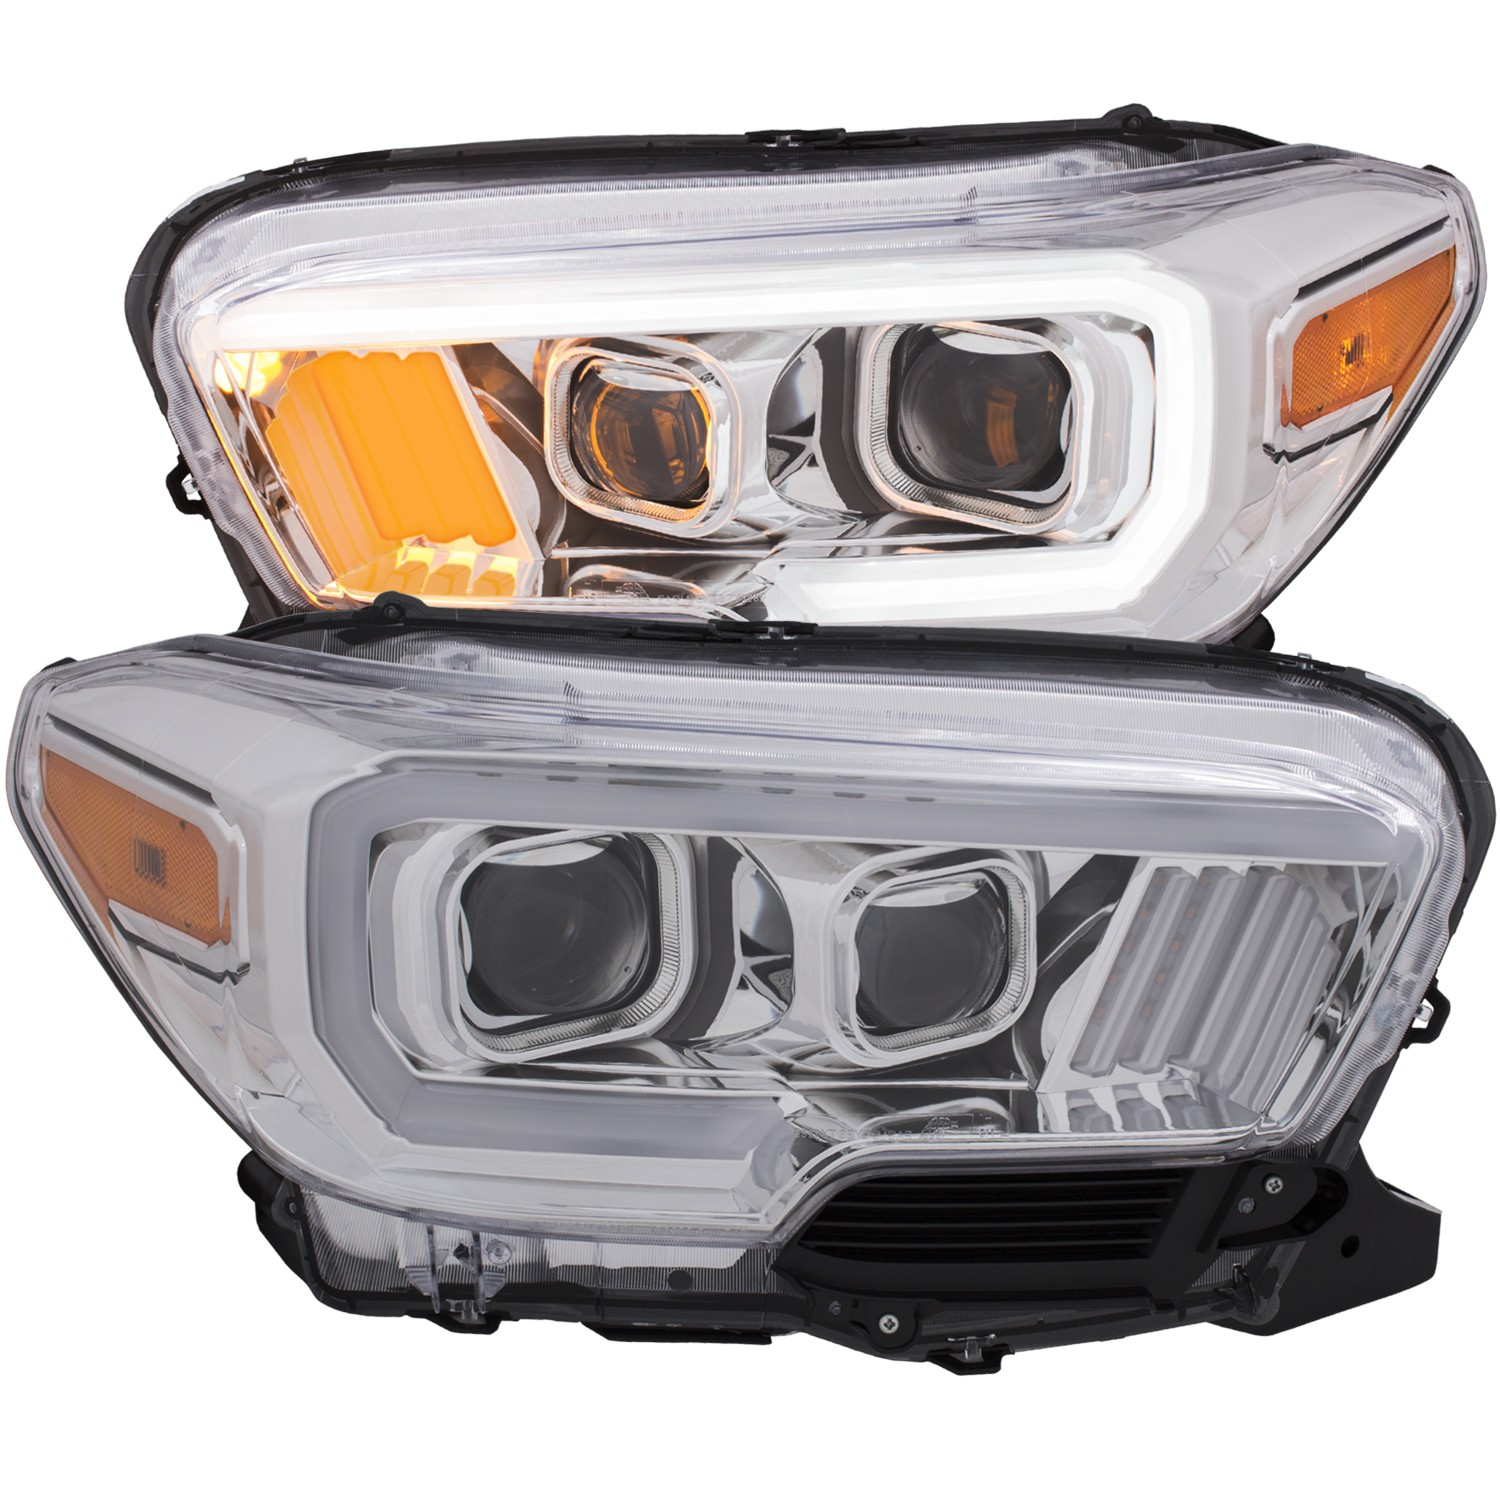 *NEW* Tacoma 16-18 Projector Plank Style Headlight Chrome W/ Amber